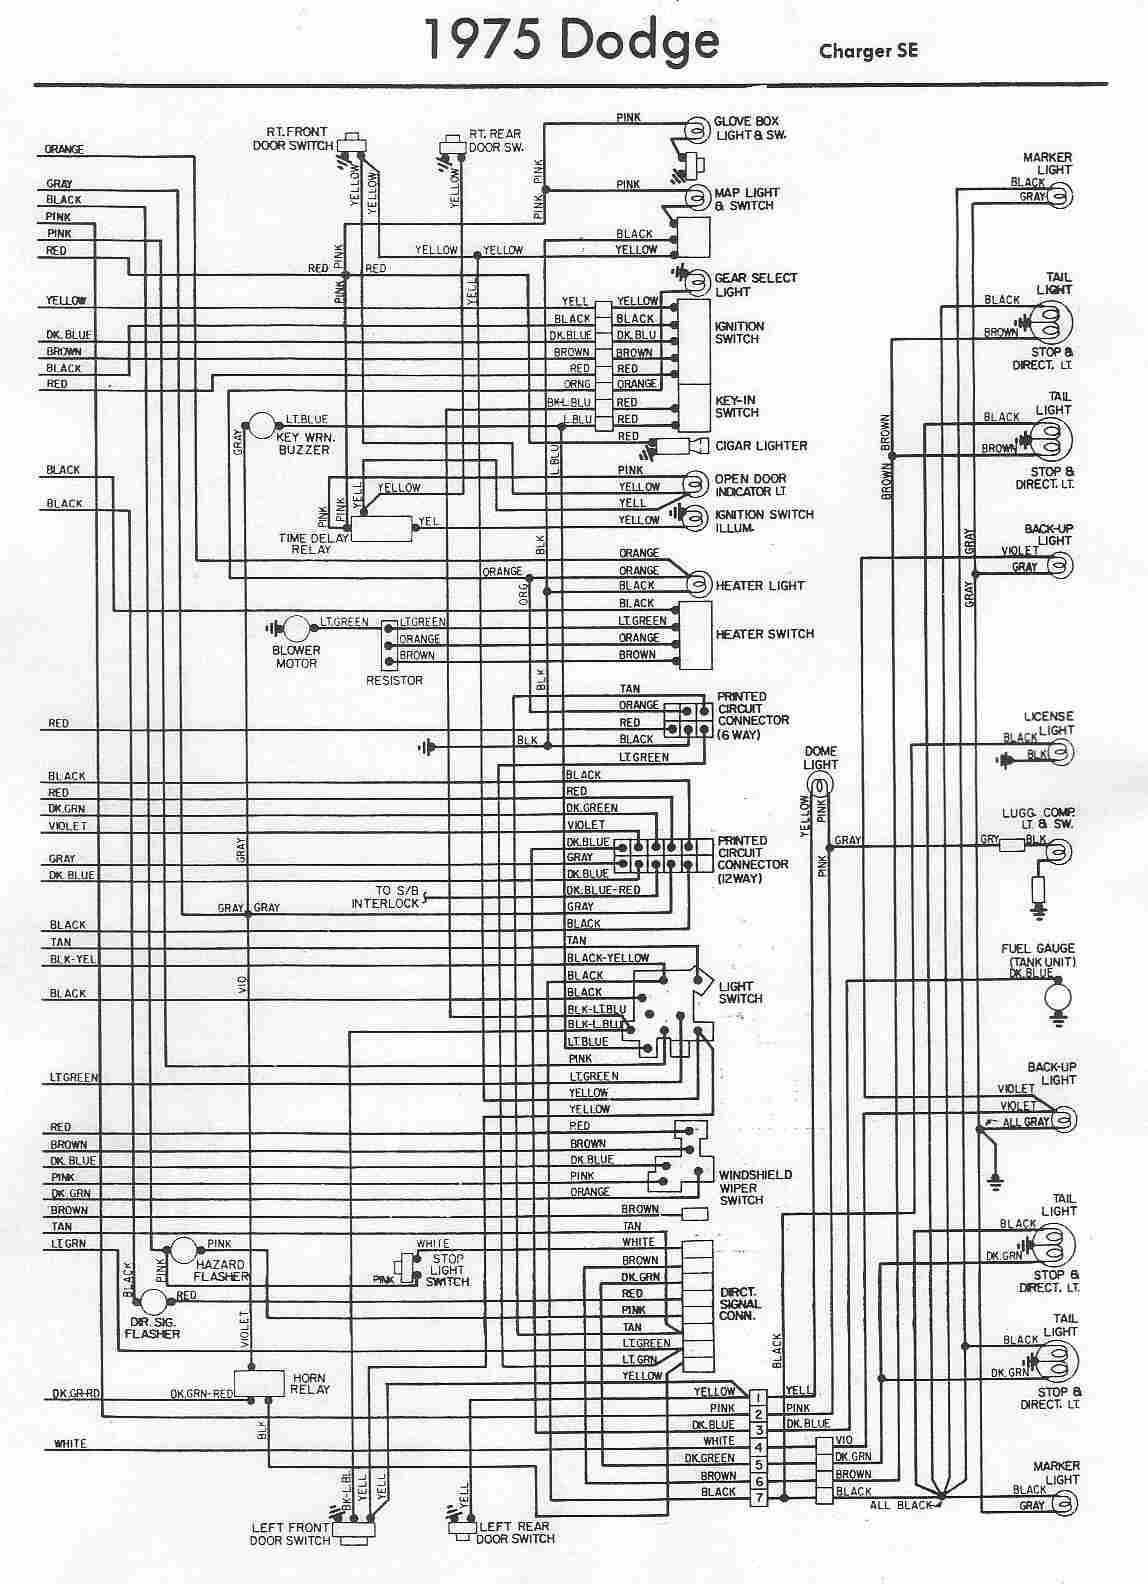 Dodge Car Manuals Wiring Diagrams Pdf Fault Codes 1997 Avenger Engine Diagram Download